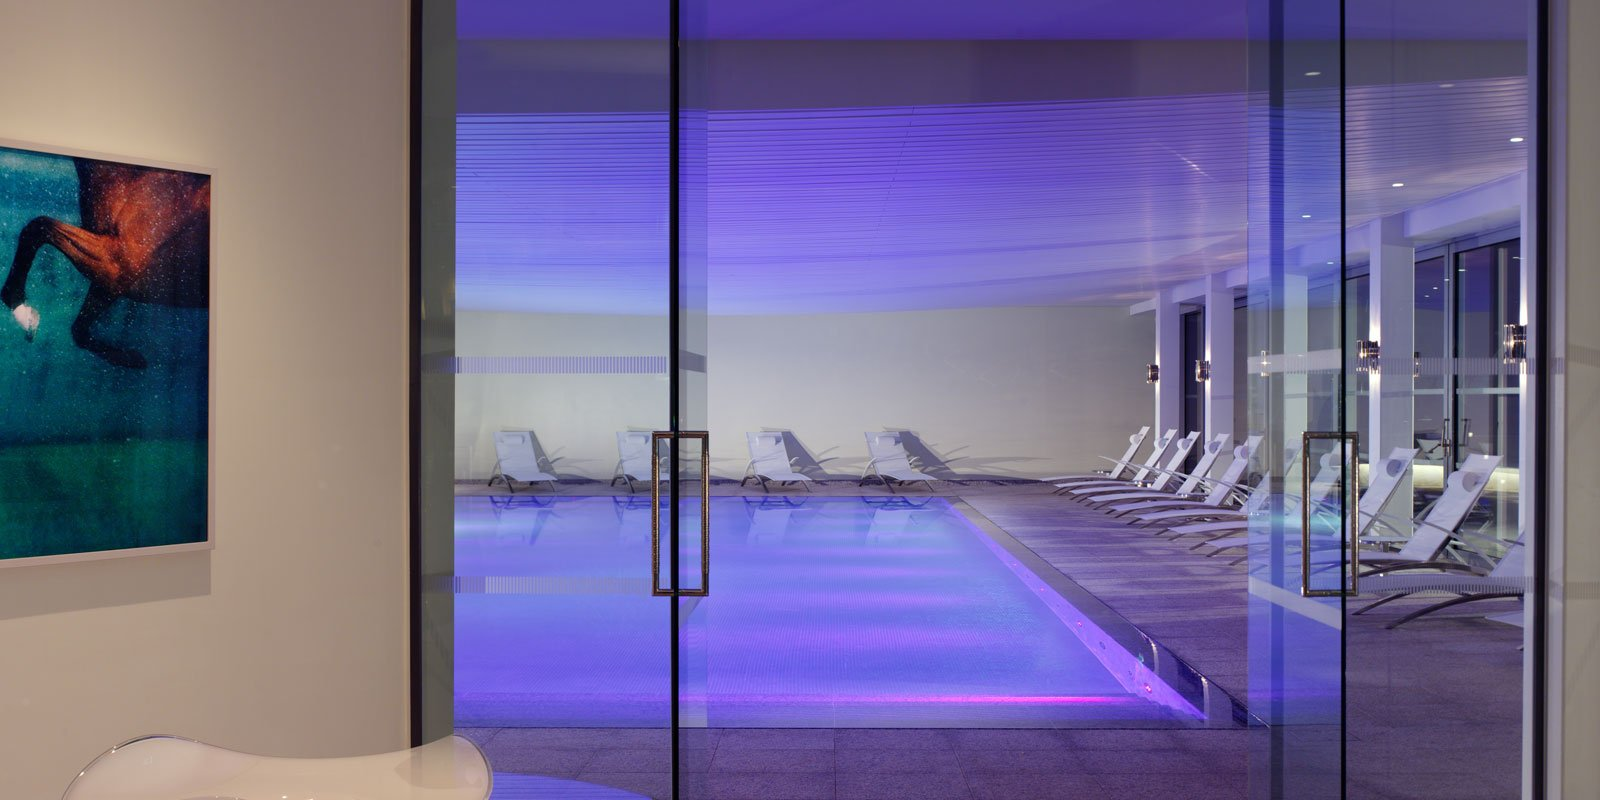 Enjoy our atmospheric heated pool with natural light, amethyst sculptures, underwater music and relaxation loungers.